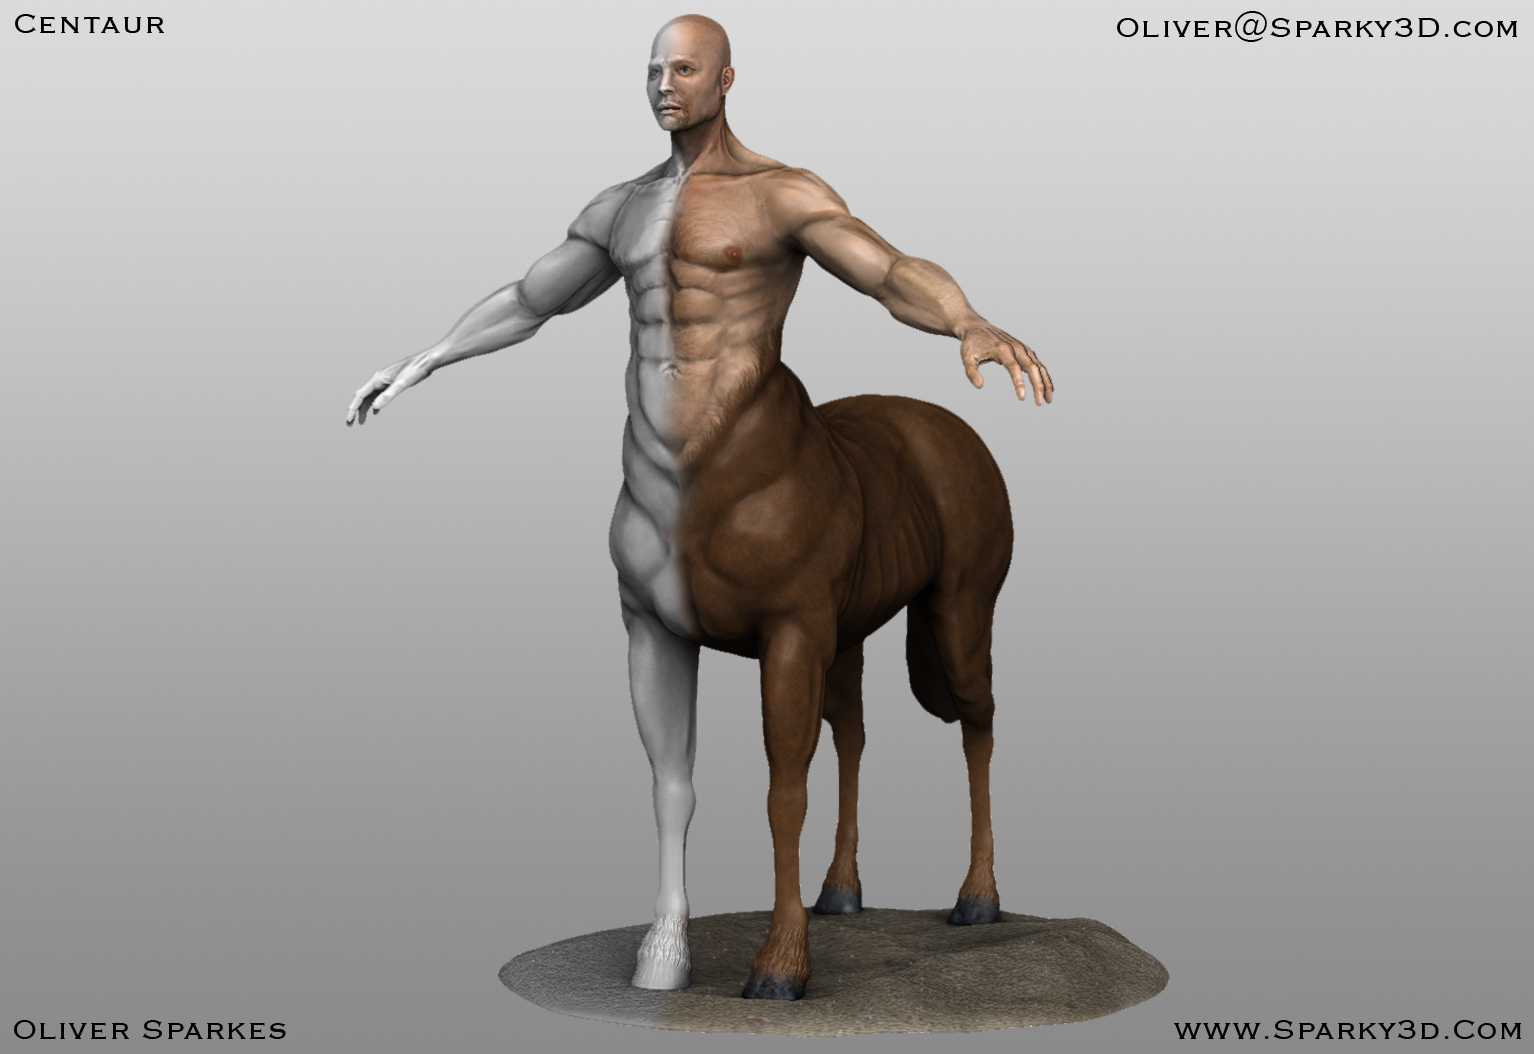 centaur_composit_Half_colour.jpg